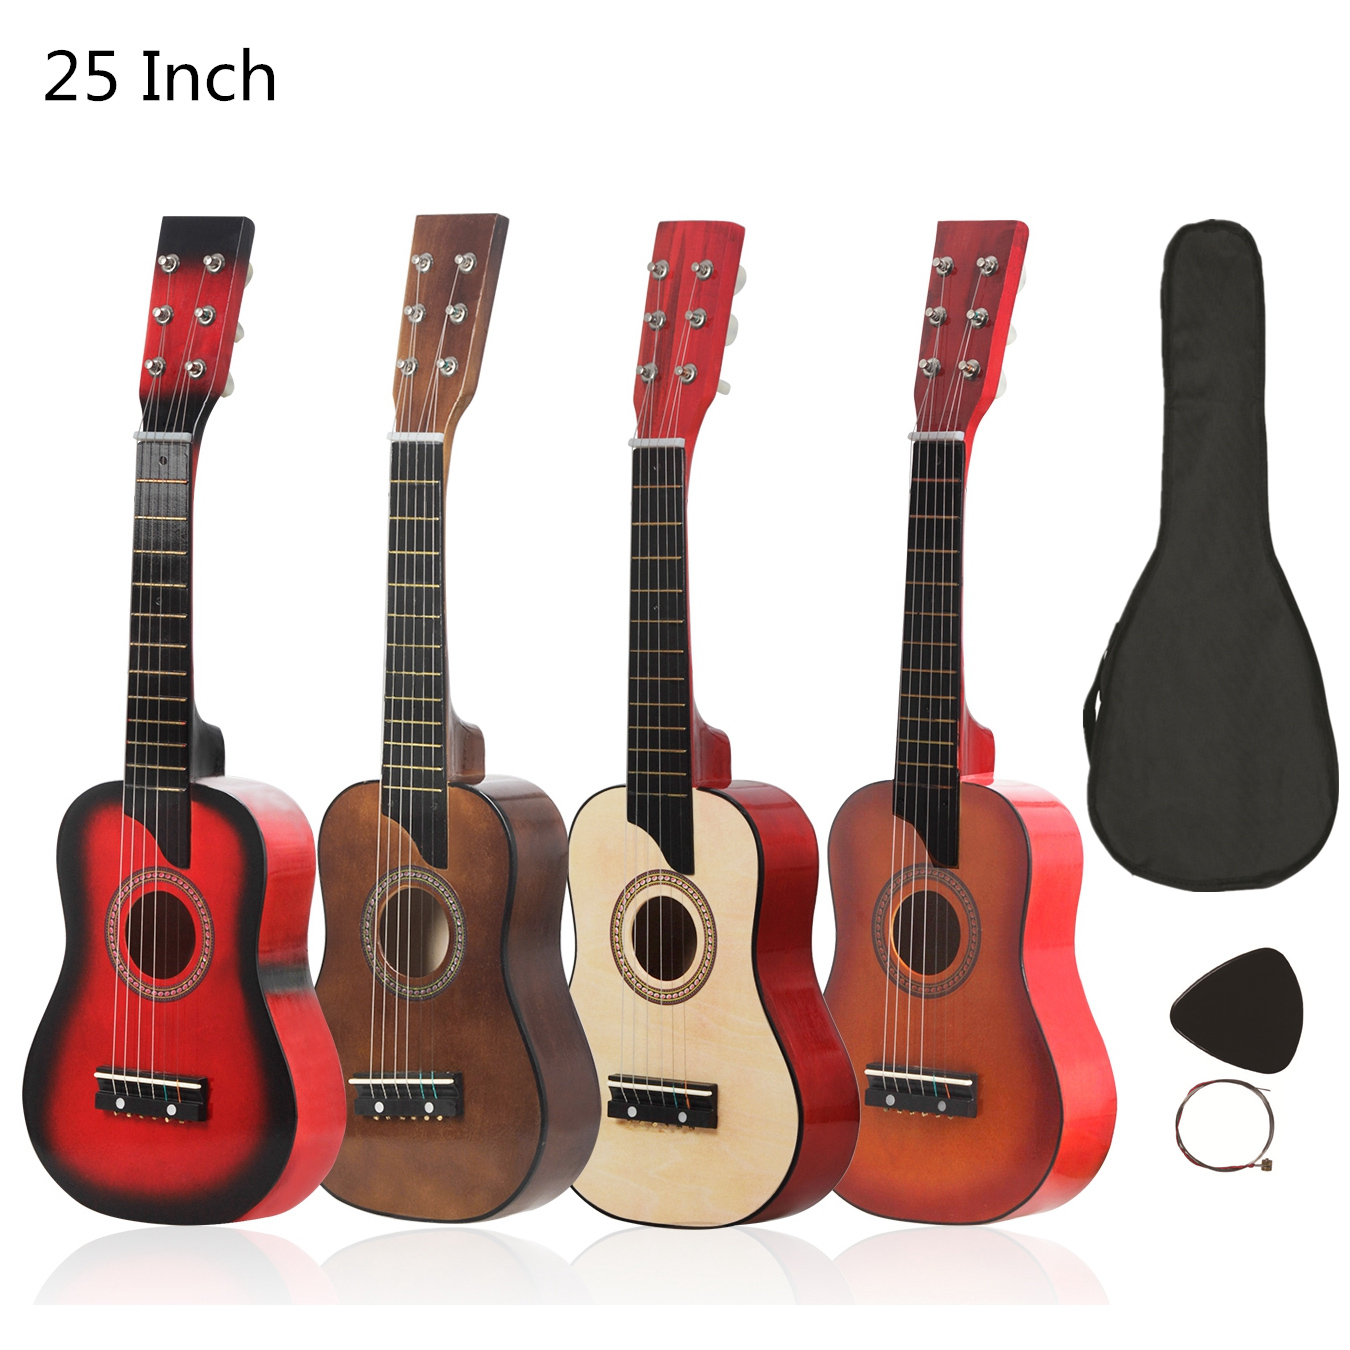 25 Inch Basswood Acoustic Guitar with Bag Pick Strings for Children and Beginner 4 Colors Optional